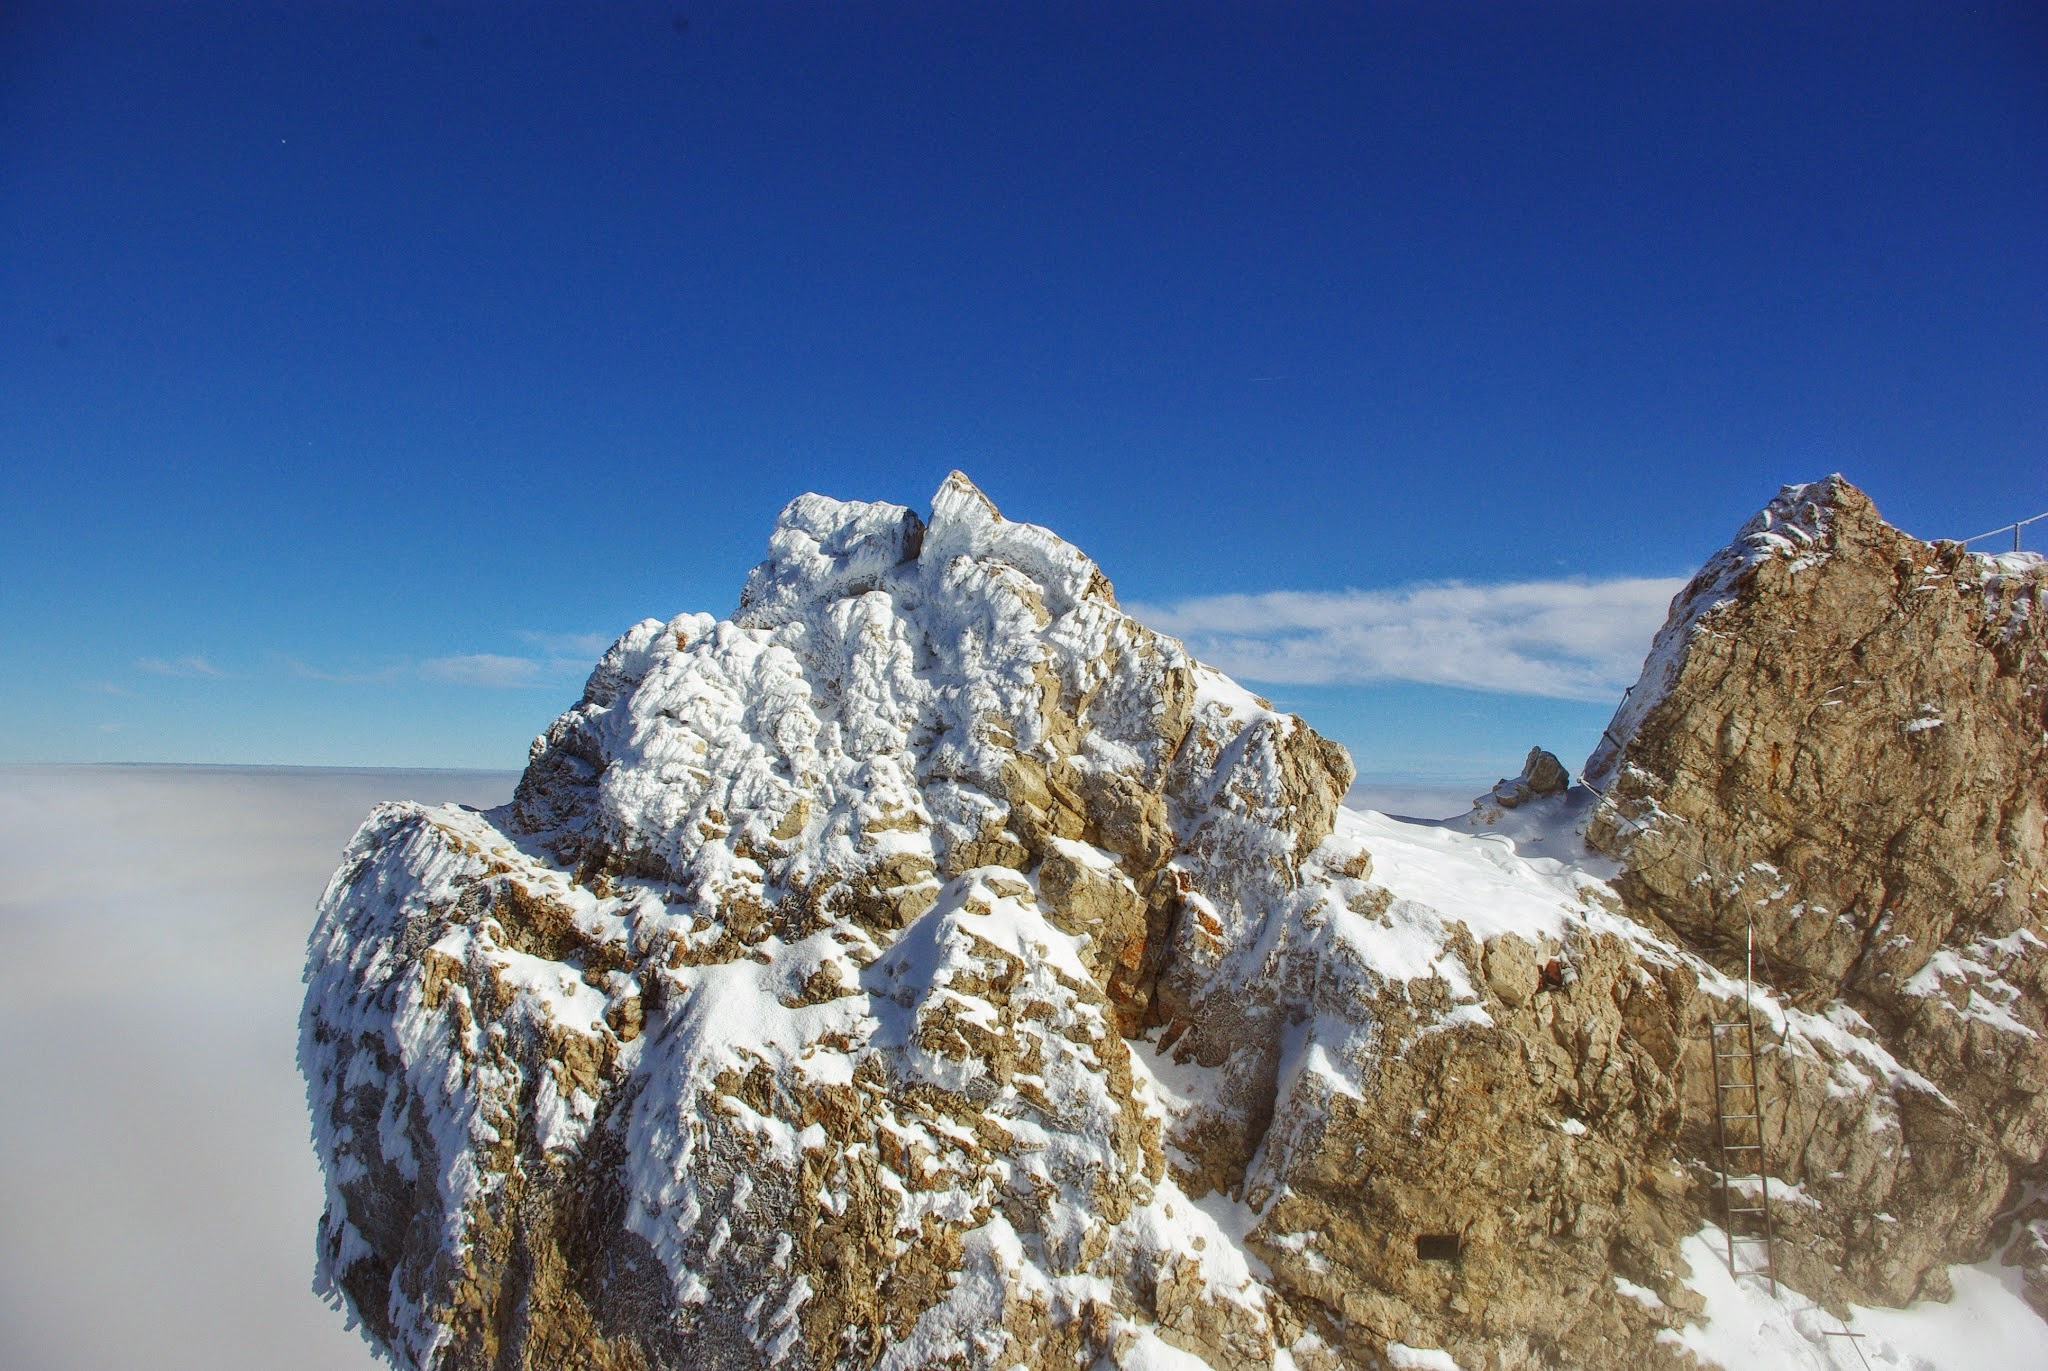 Our cable car rose out of the snow cloud and we got our first view of the snowy limestone summit.